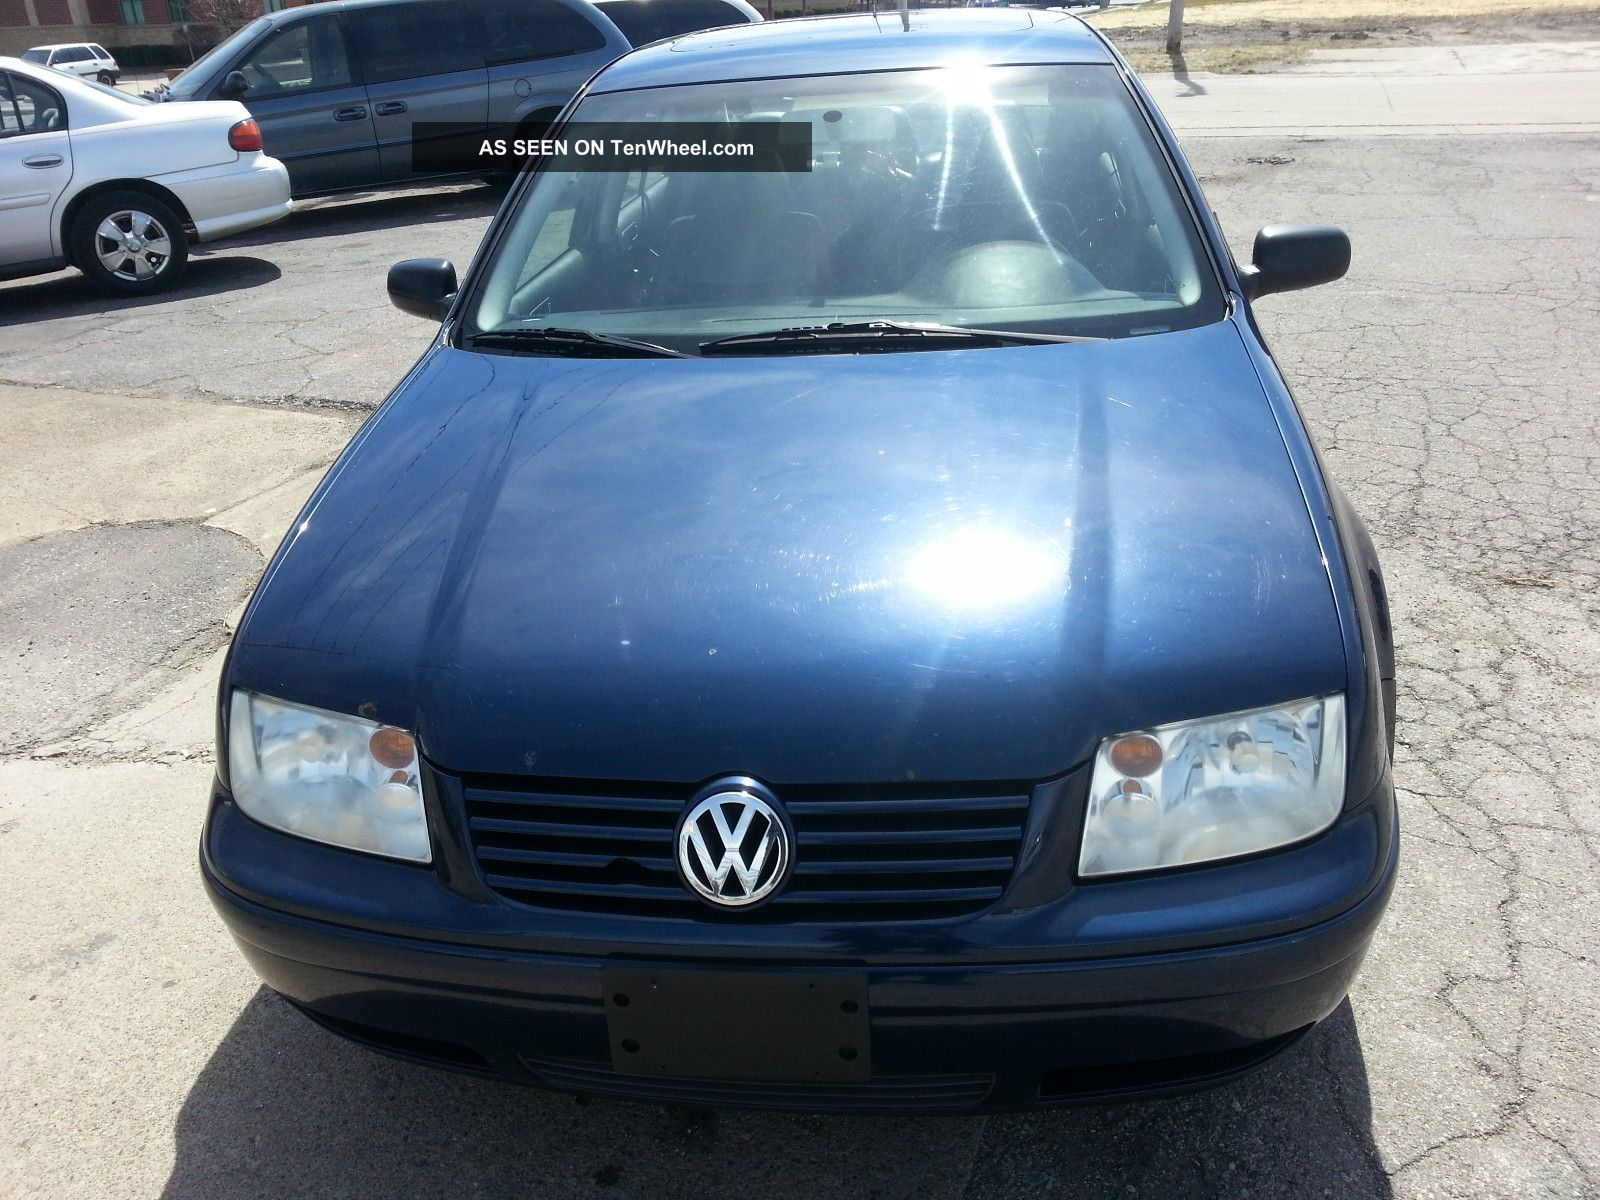 2003 Volkswagen Jetta Gli Sedan Jetta photo